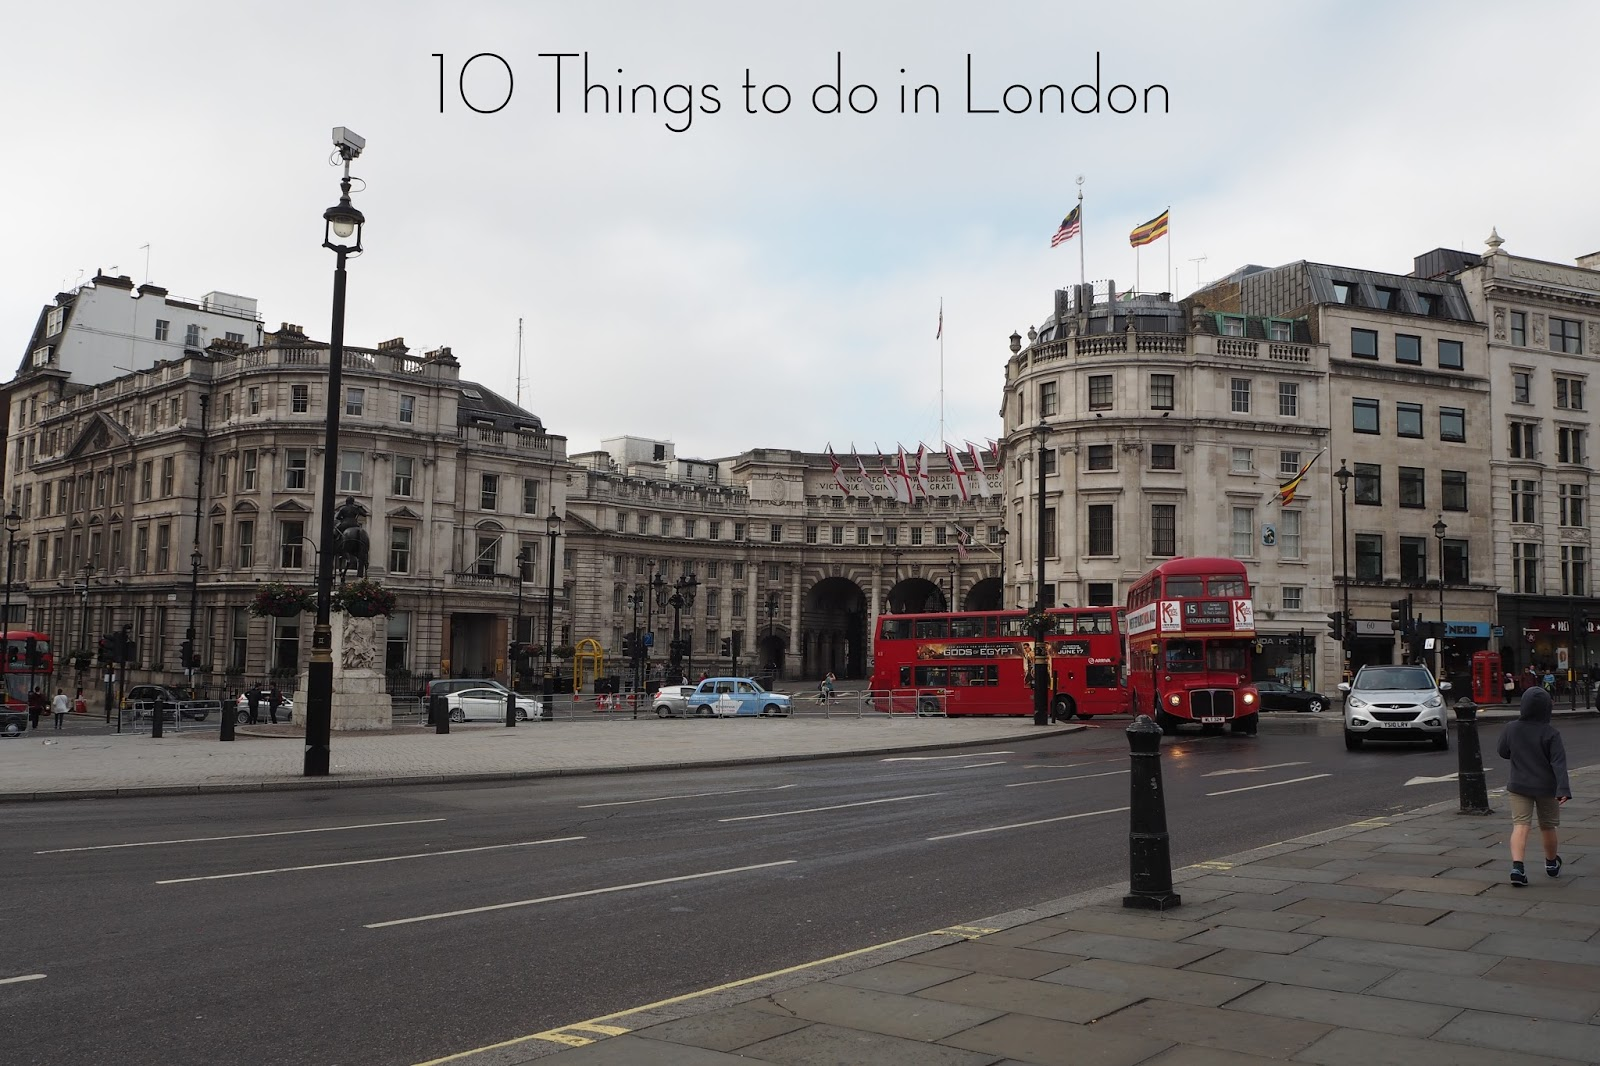 10 things to do in london, must do things in london, must see things in london, buckingham palace, big ben, oxford street, harrods, the shard, the tube, covent garden, st james park, buckingham palace gardens, green park, hyde park, kensington gardens, borough market